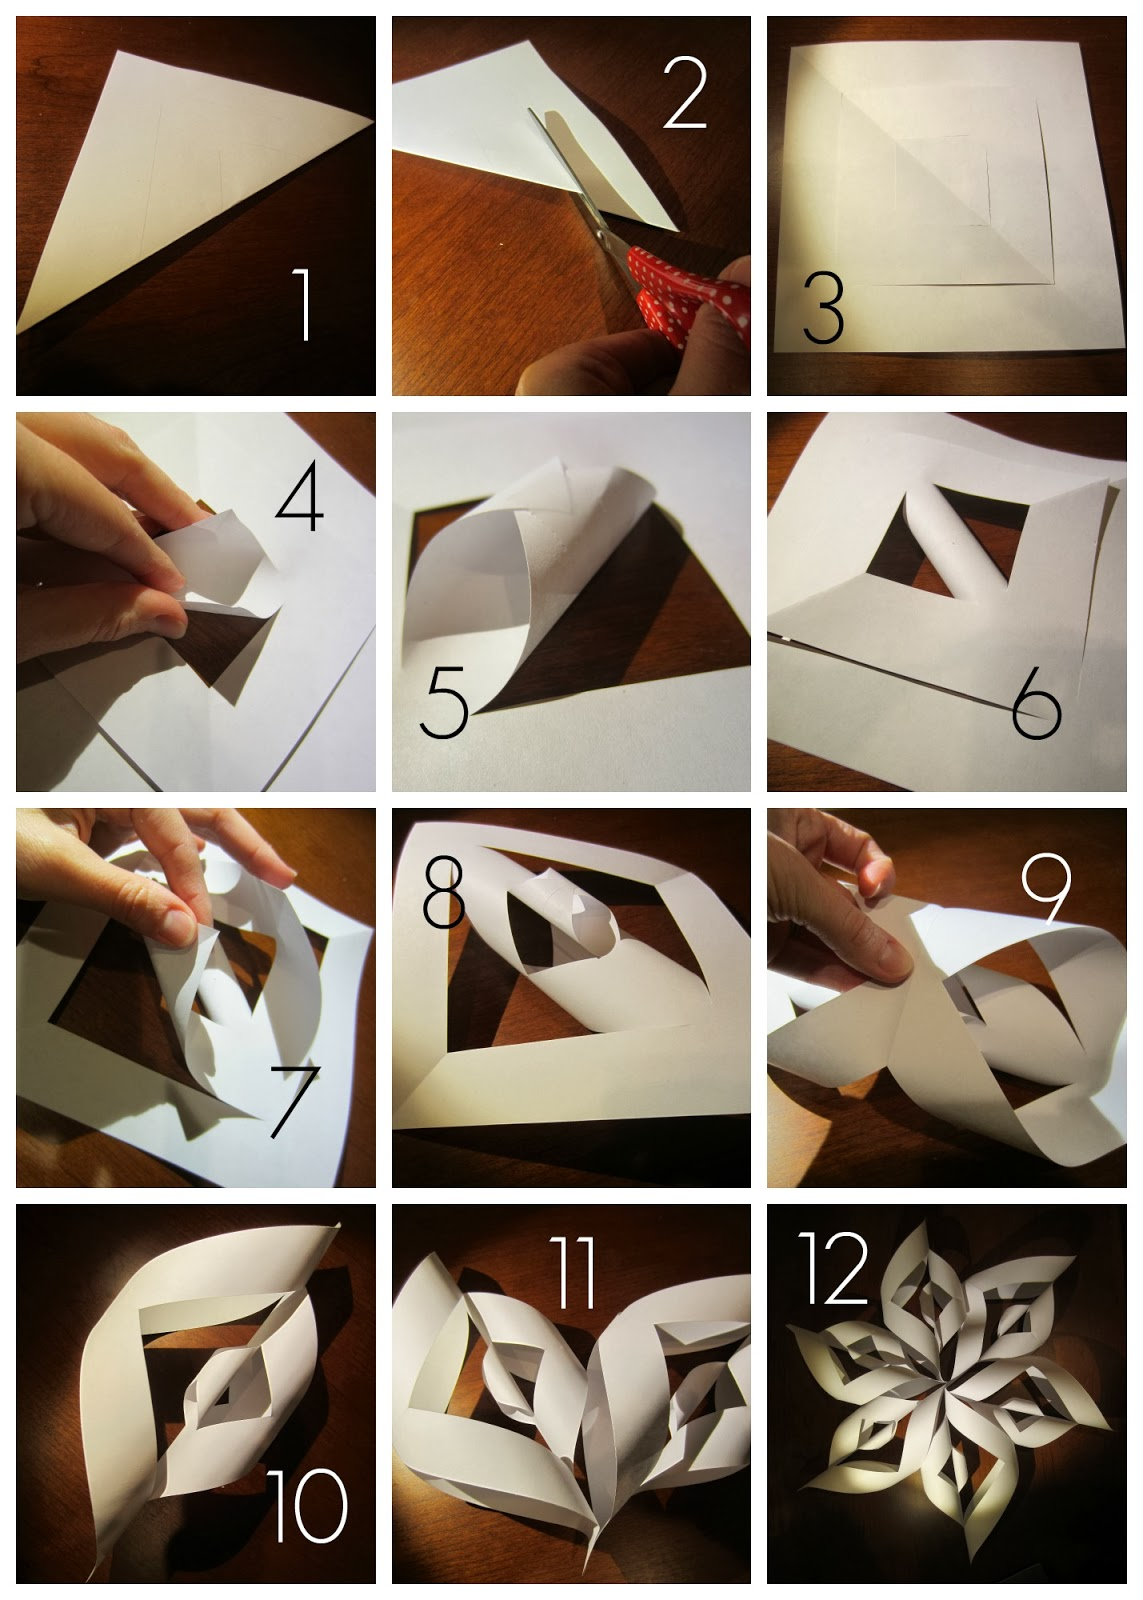 Relentlessly fun deceptively educational how snowflakes for How to make a real paper snowflake